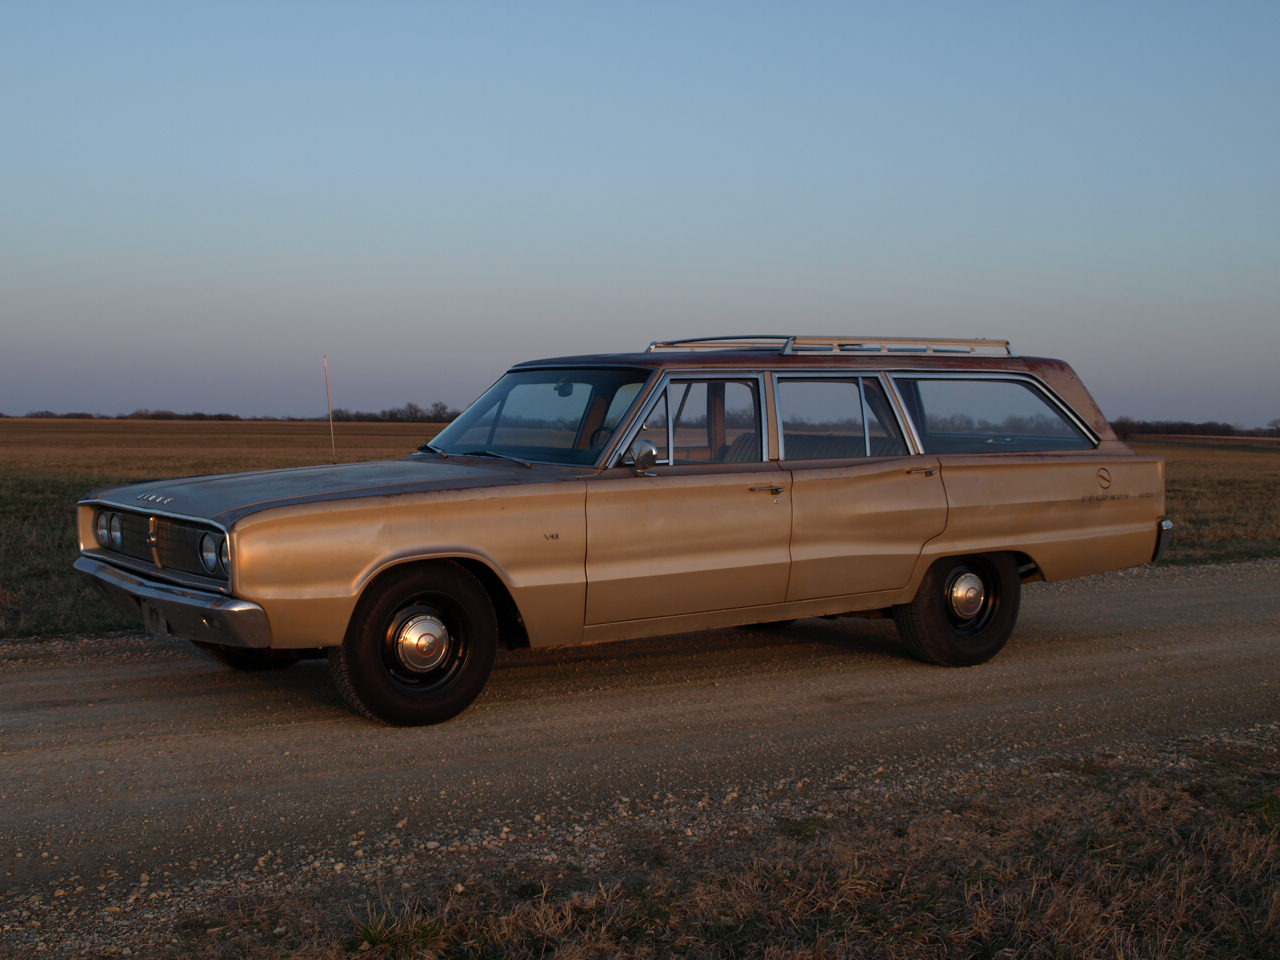 American Find 2010 1941 Plymouth Station Wagon Sleeper 1967 Dodge Coronet 440 That Is A Non Rusty Former California Car With 123500 On The Odometer Runs And Drives Perfect